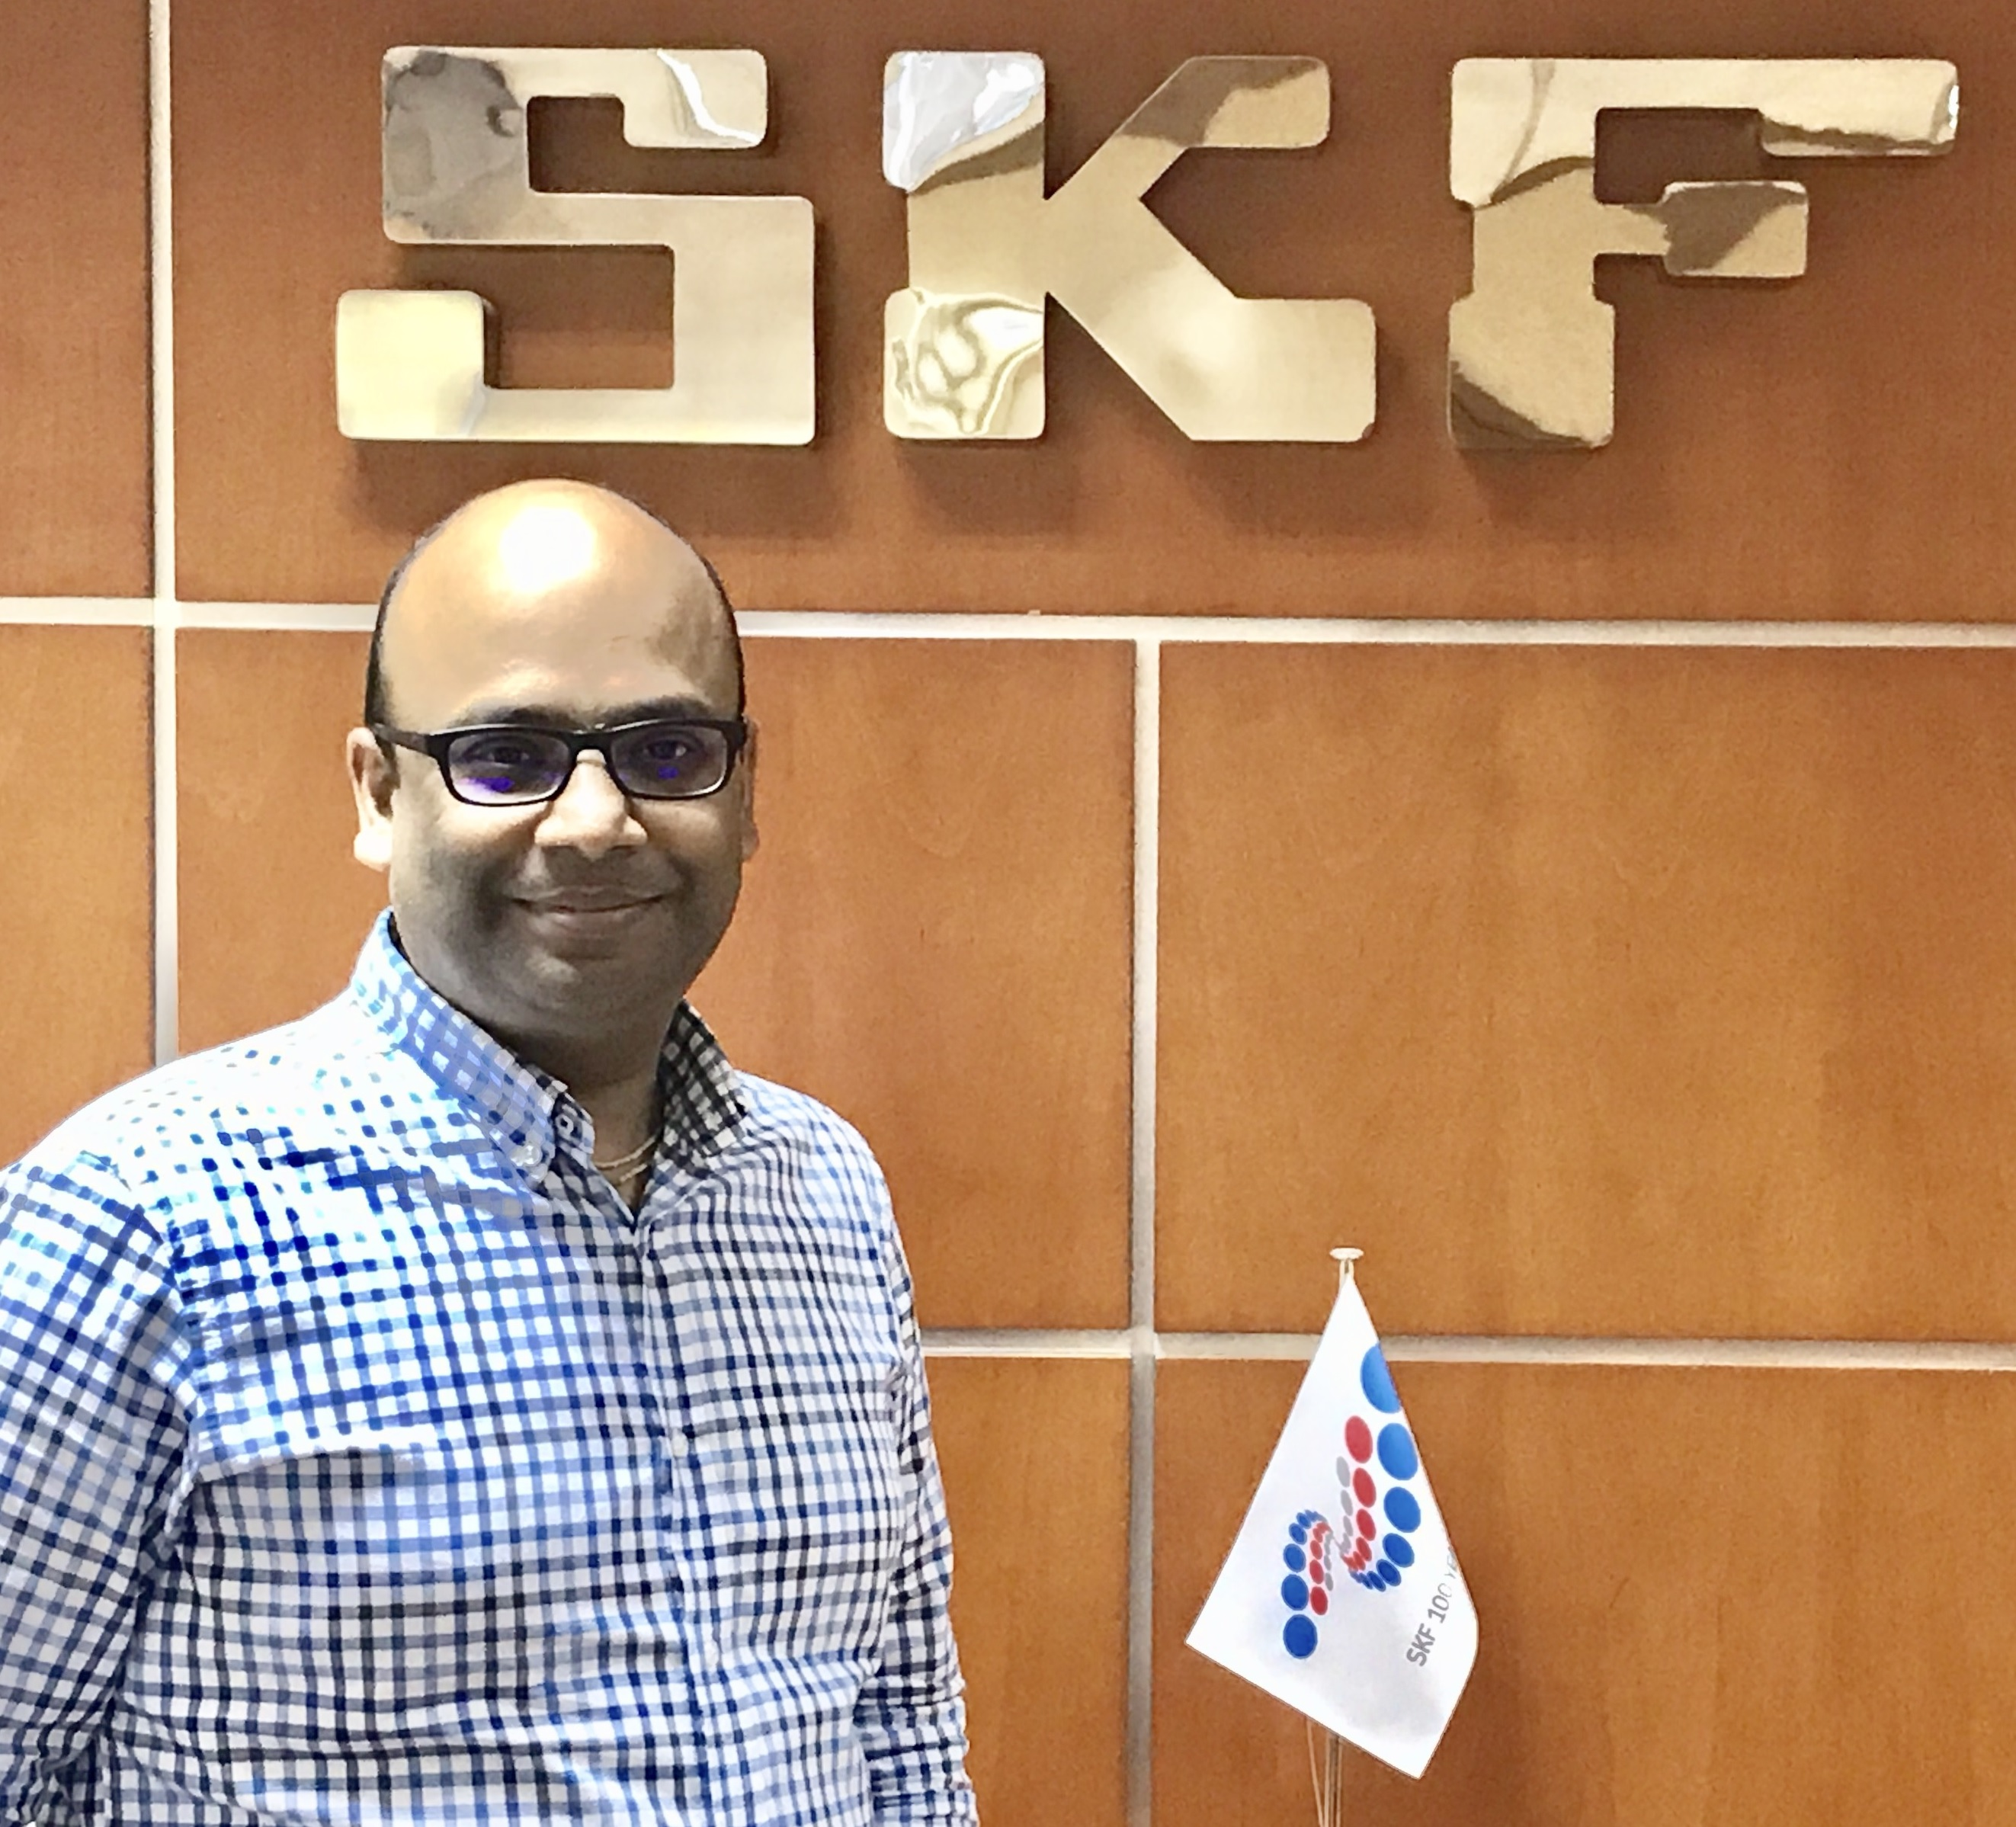 Interview with Swapnil Gupta - Sales Manager Middle East - Vehicle Aftermarket, SKF Middle East